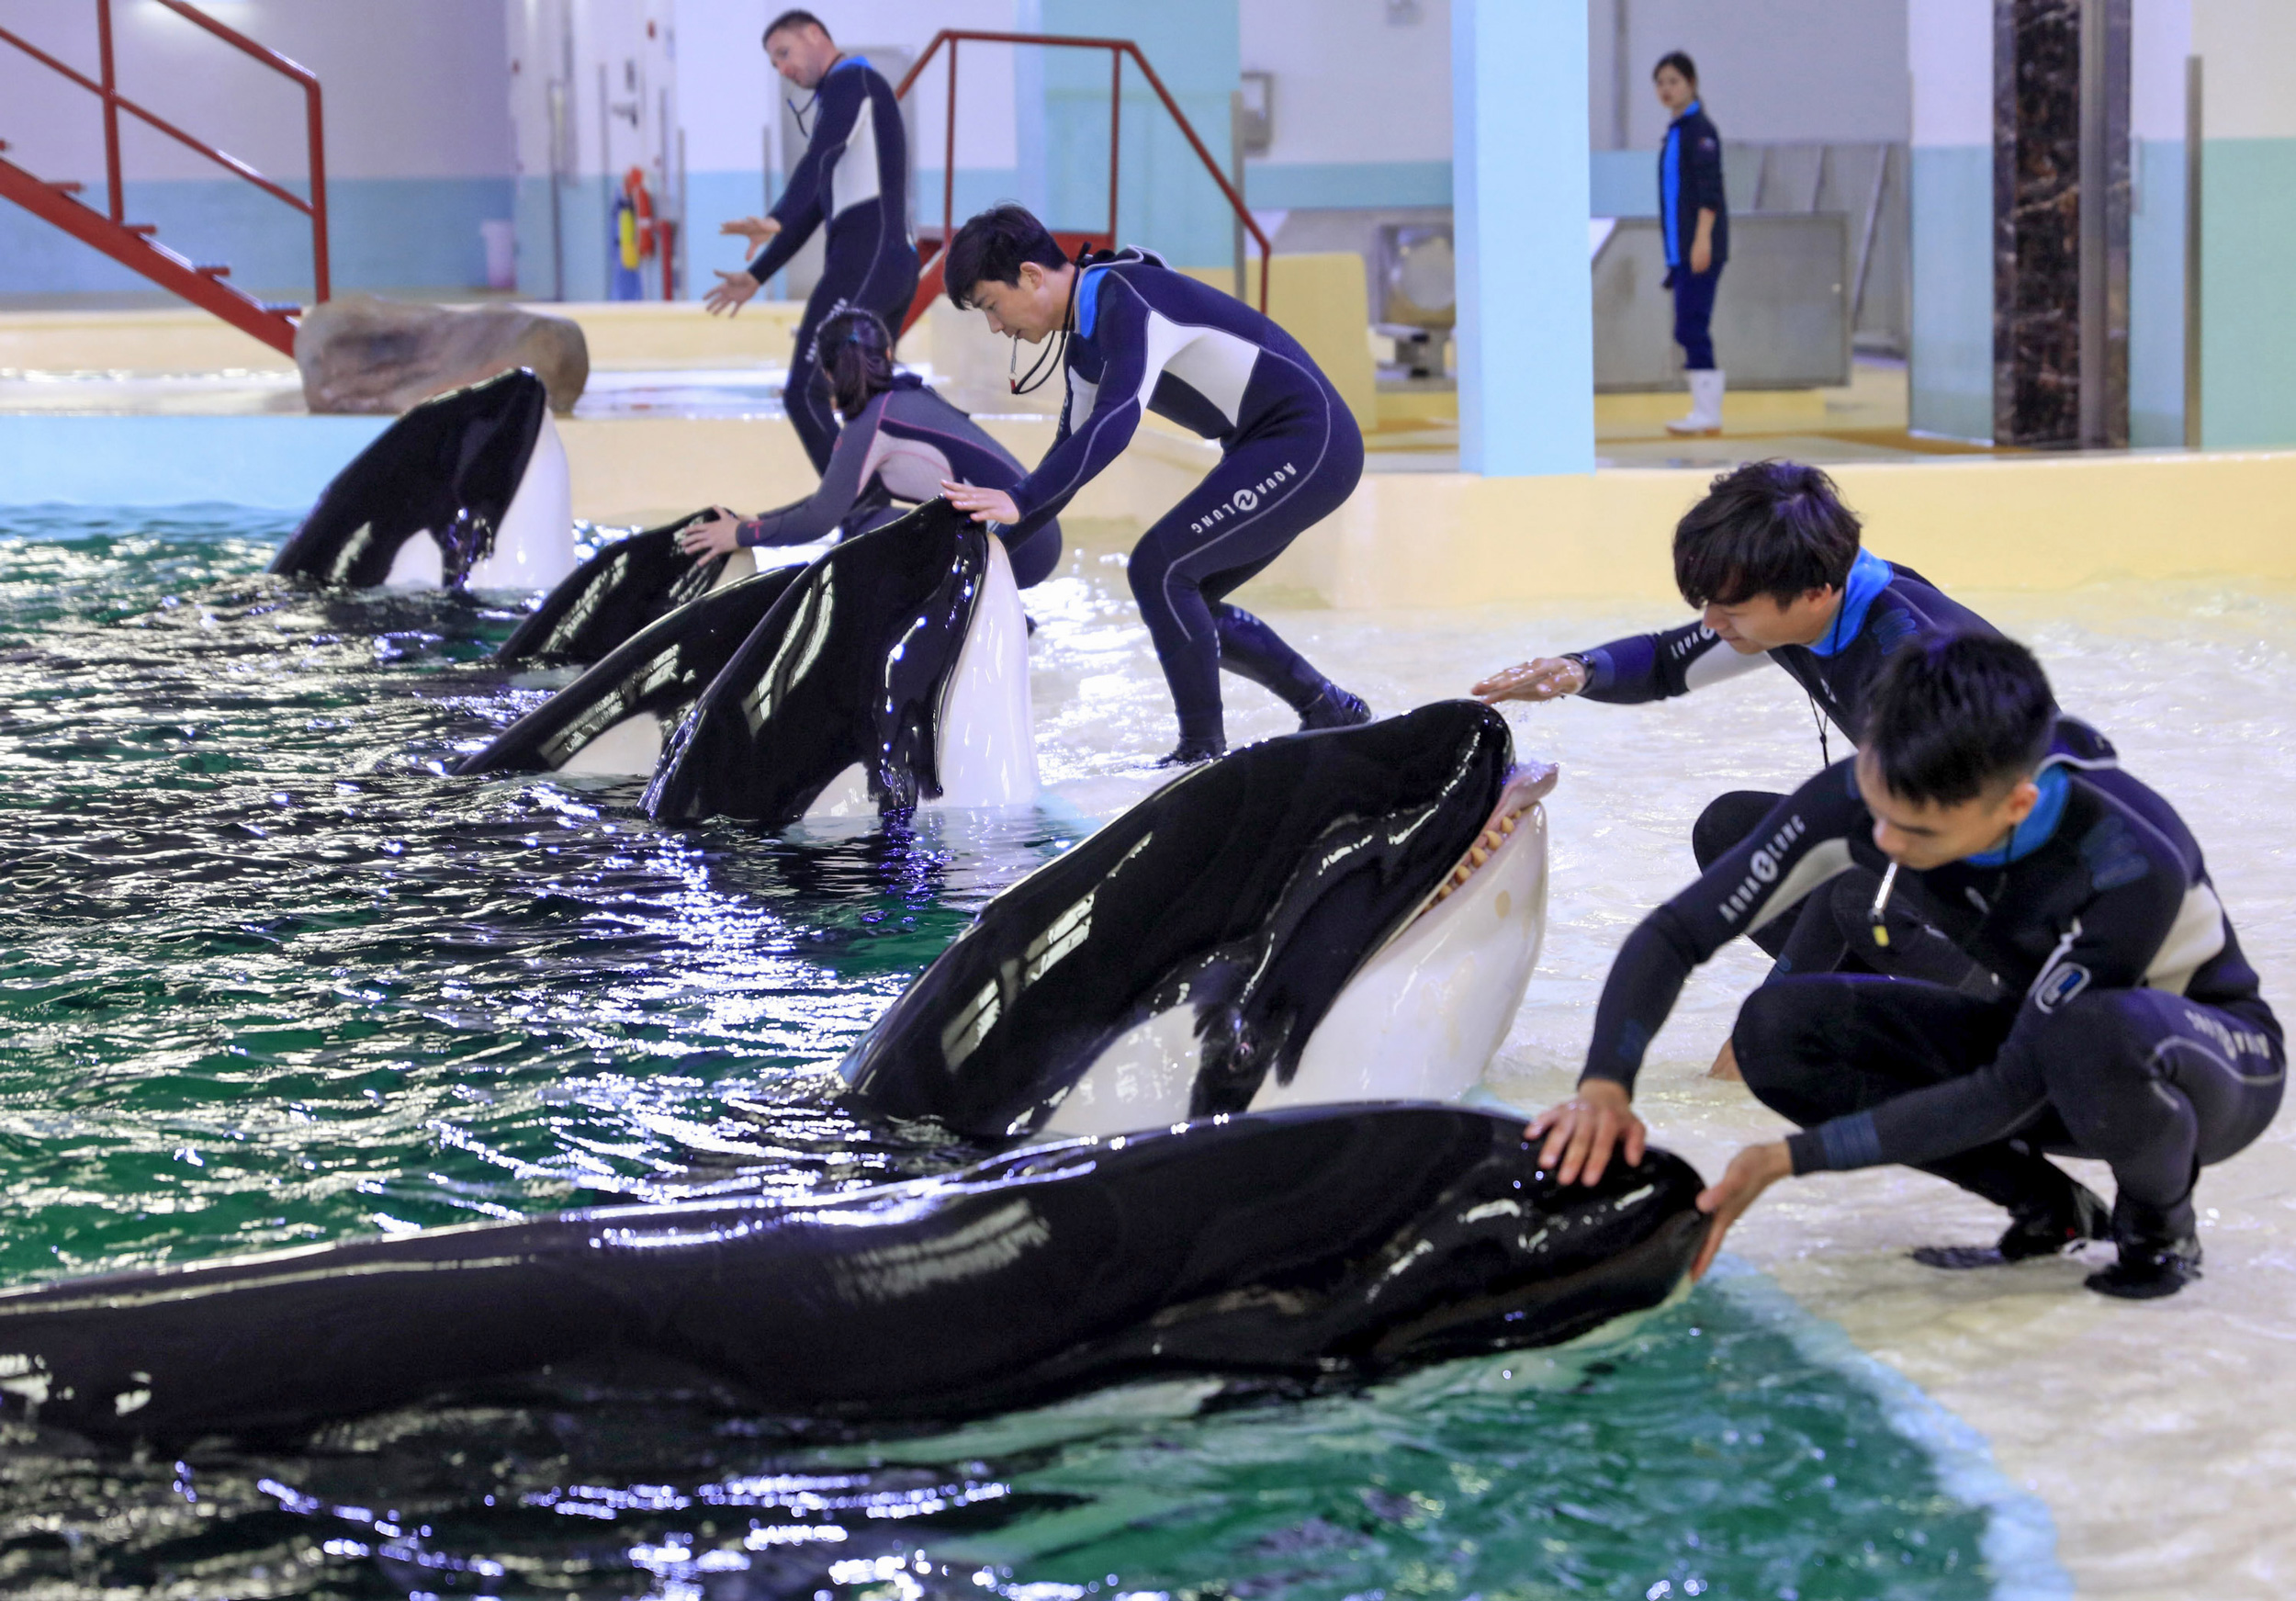 Trainers interact with captive killer whales at China's Chimelong Ocean Kingdom. Last month, the facility became home to China's first breeding center for killer whales. Photo by Liu Dawei Xinhua News Agency/Newscom